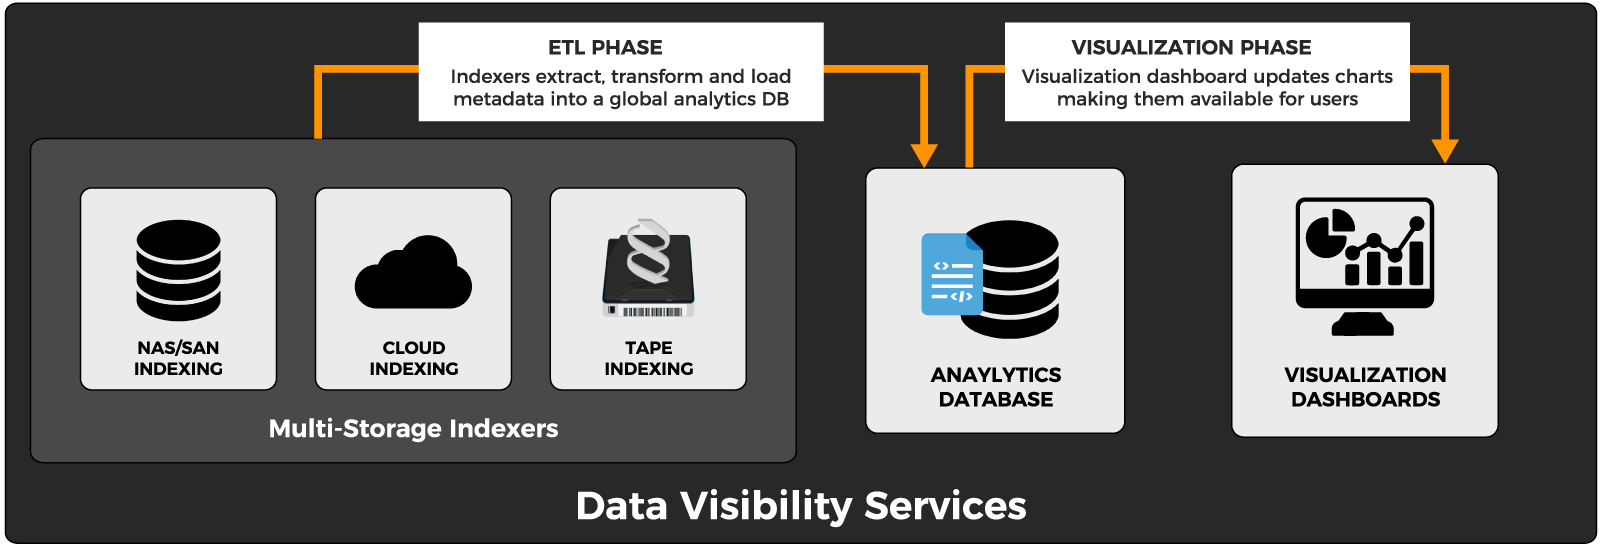 Data Visibility Services